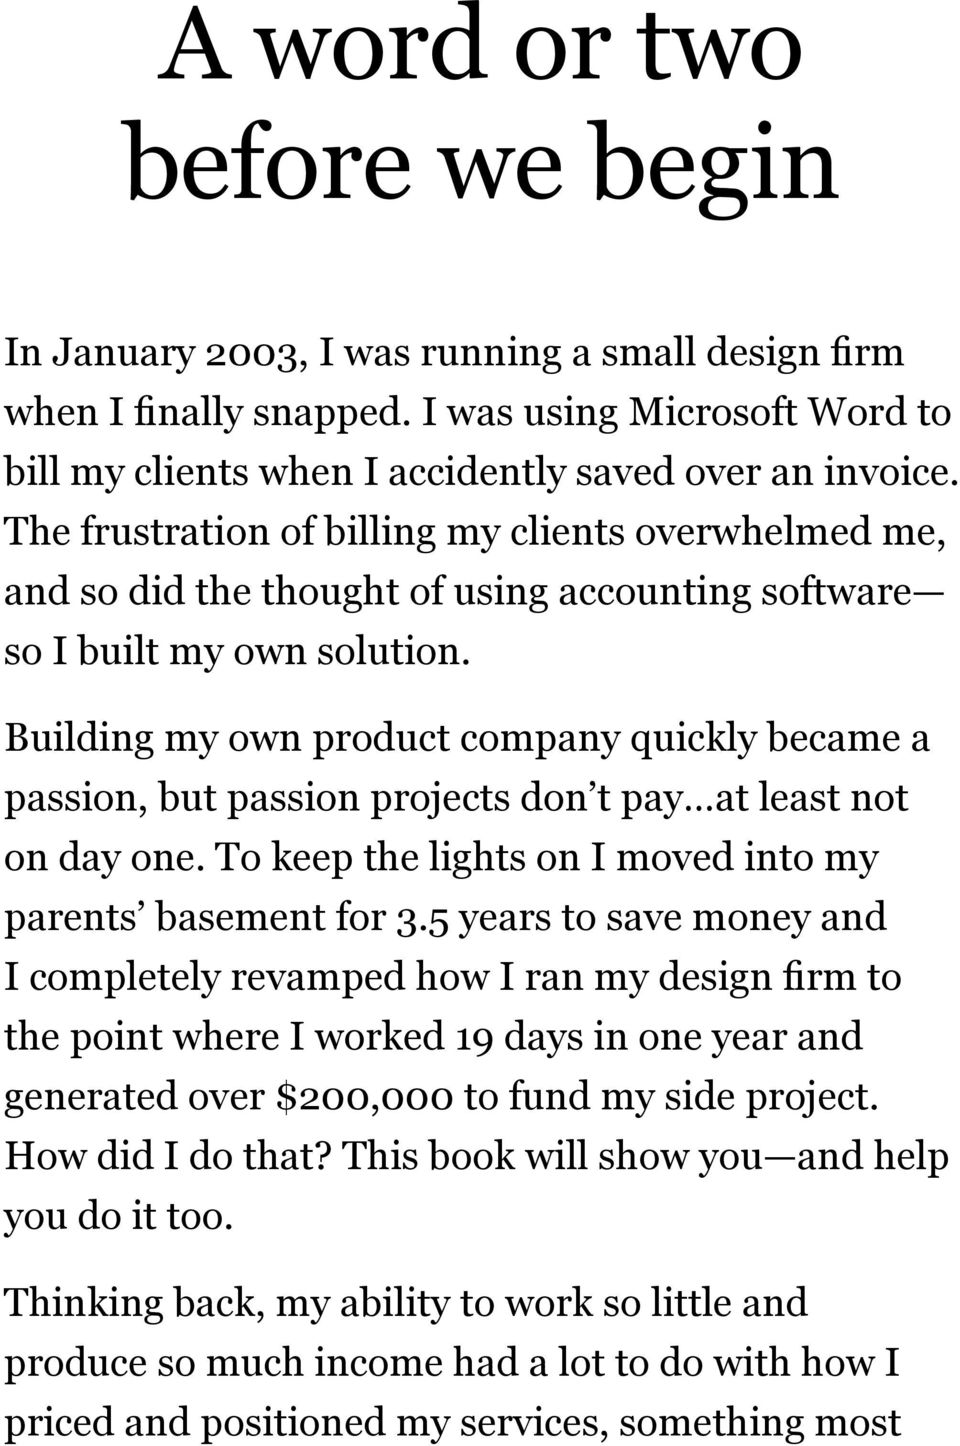 Building my own product company quickly became a passion, but passion projects don t pay at least not on day one. To keep the lights on I moved into my parents basement for 3.